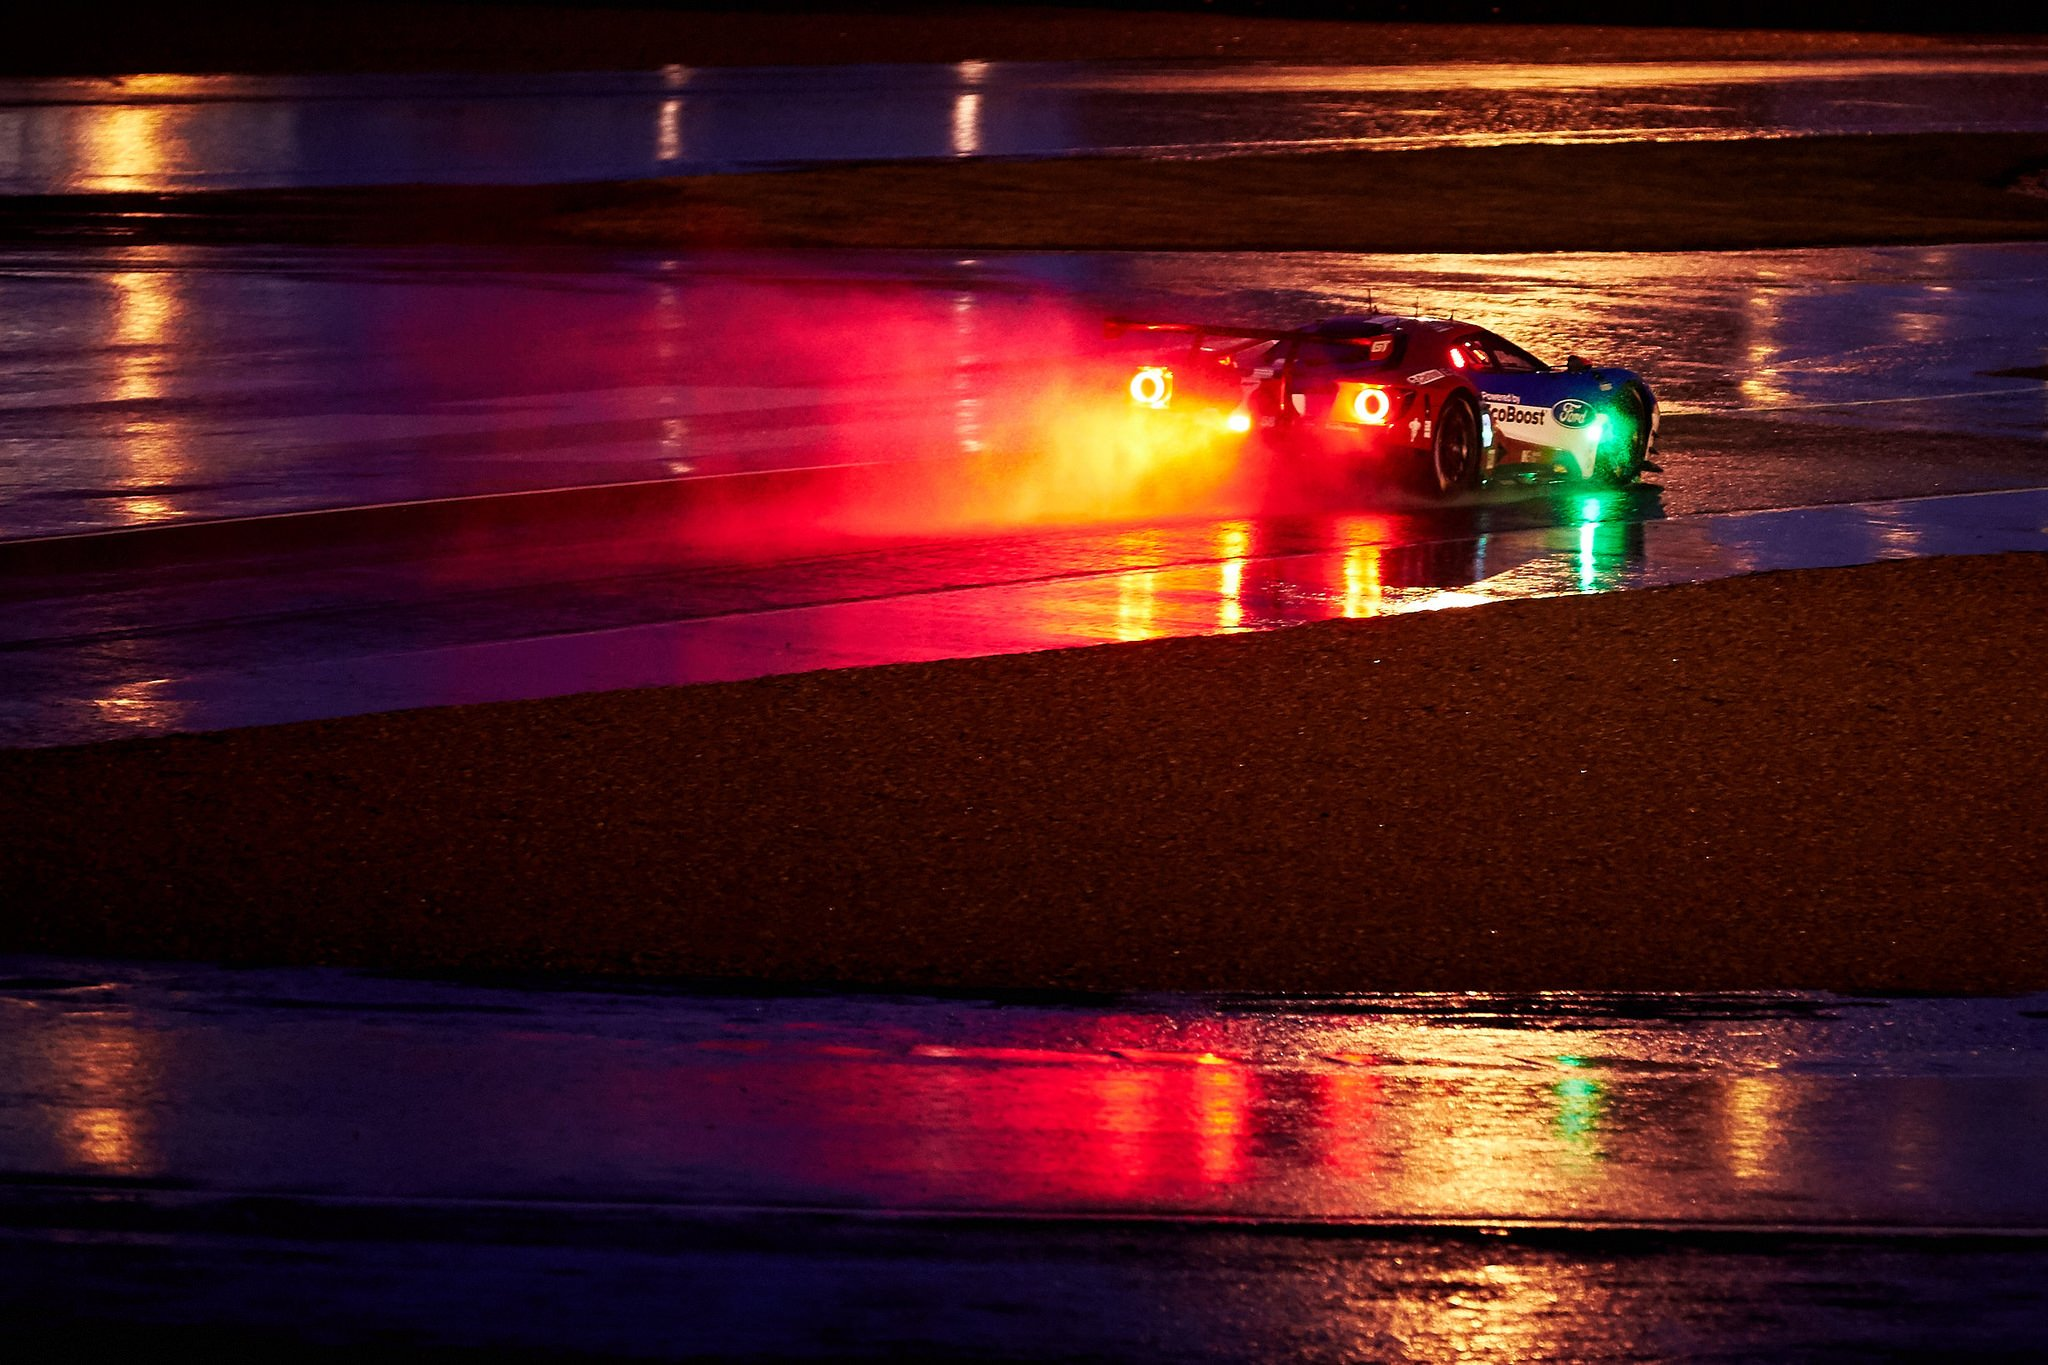 The FIA Has Just Slowed Down the Ford GT Ahead of the 24 Hours of Le Mans